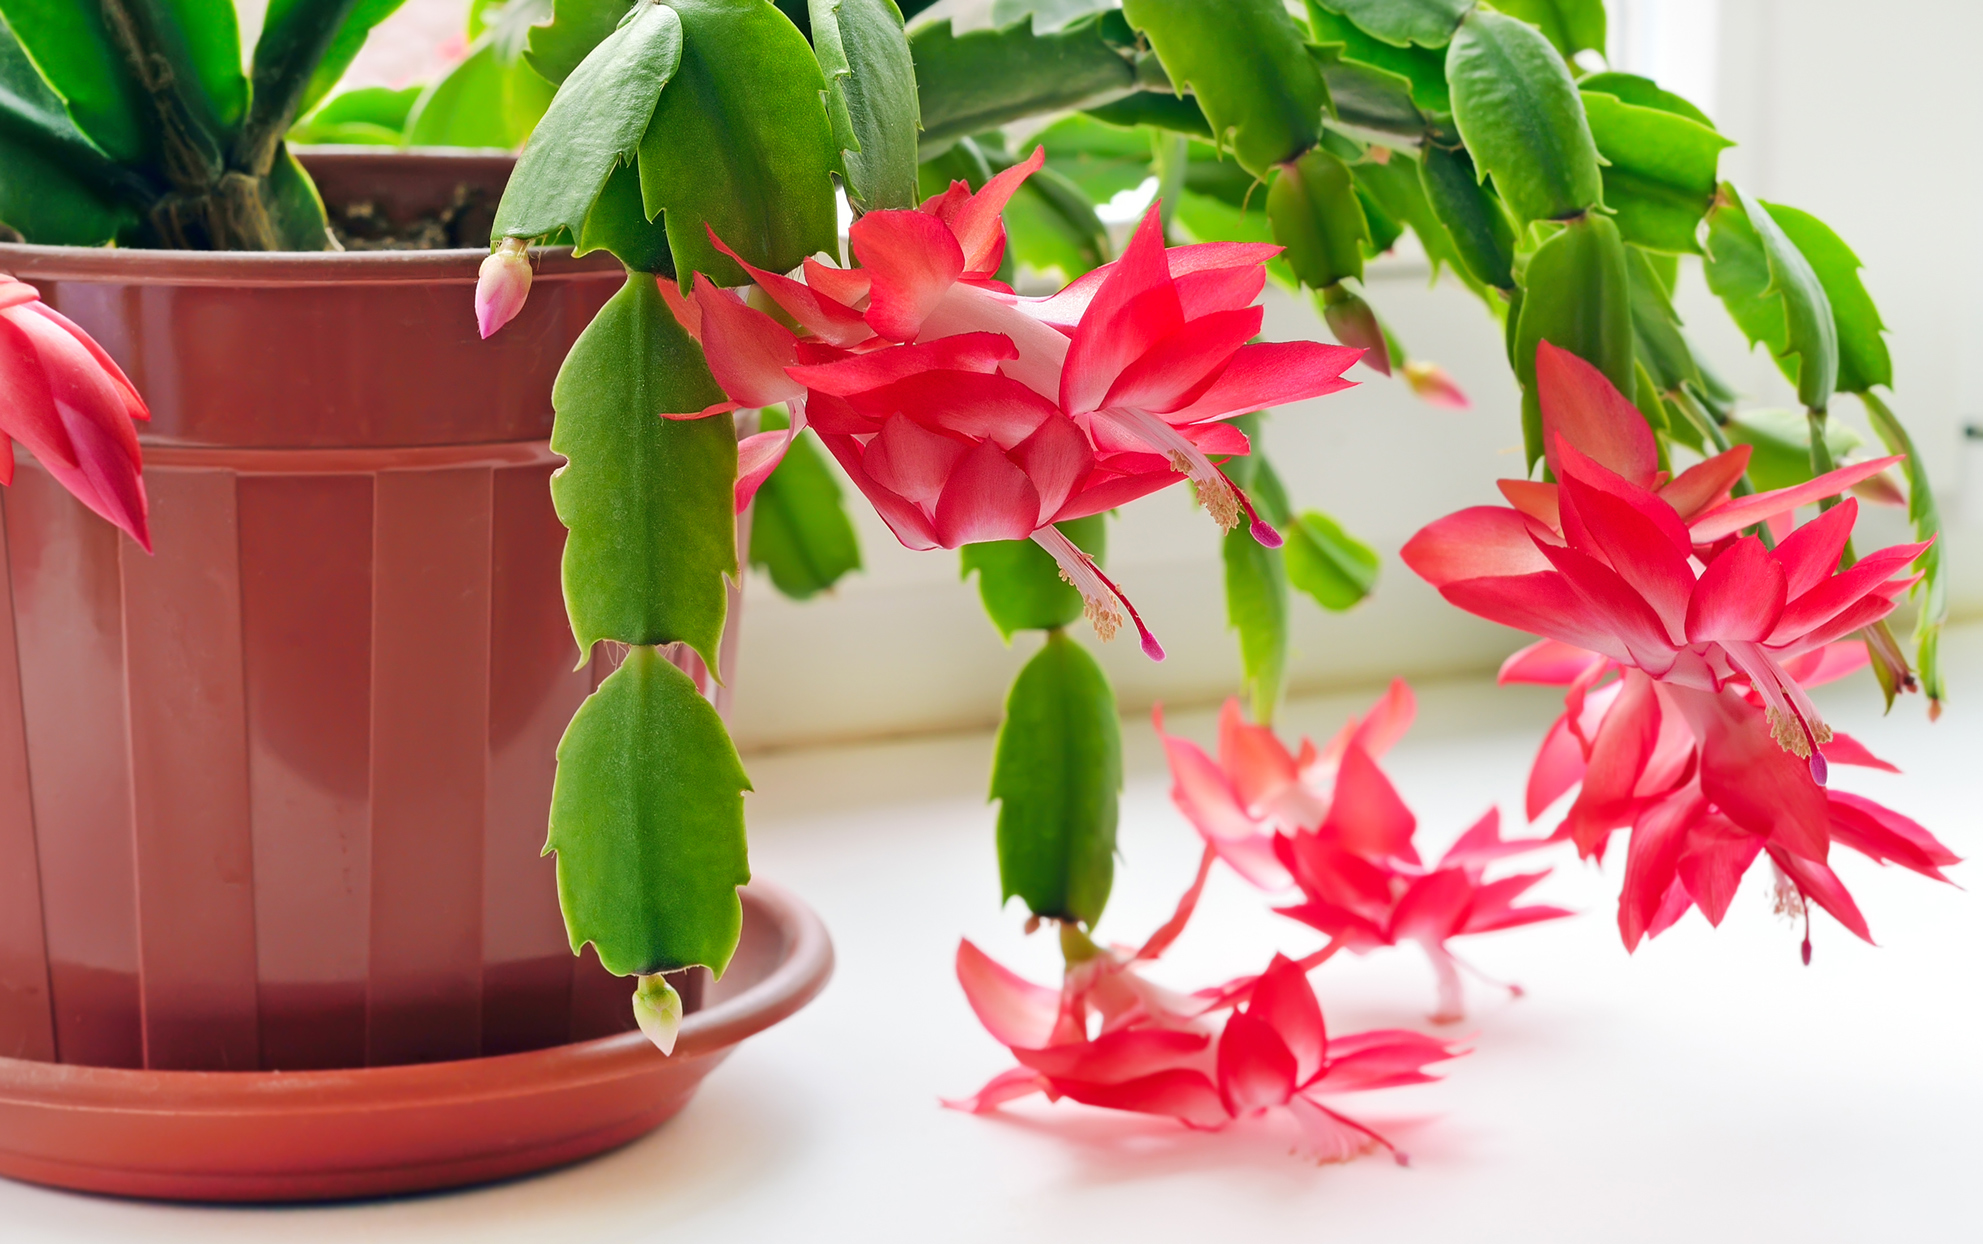 Christmas cactus plant in a red pot with near a window